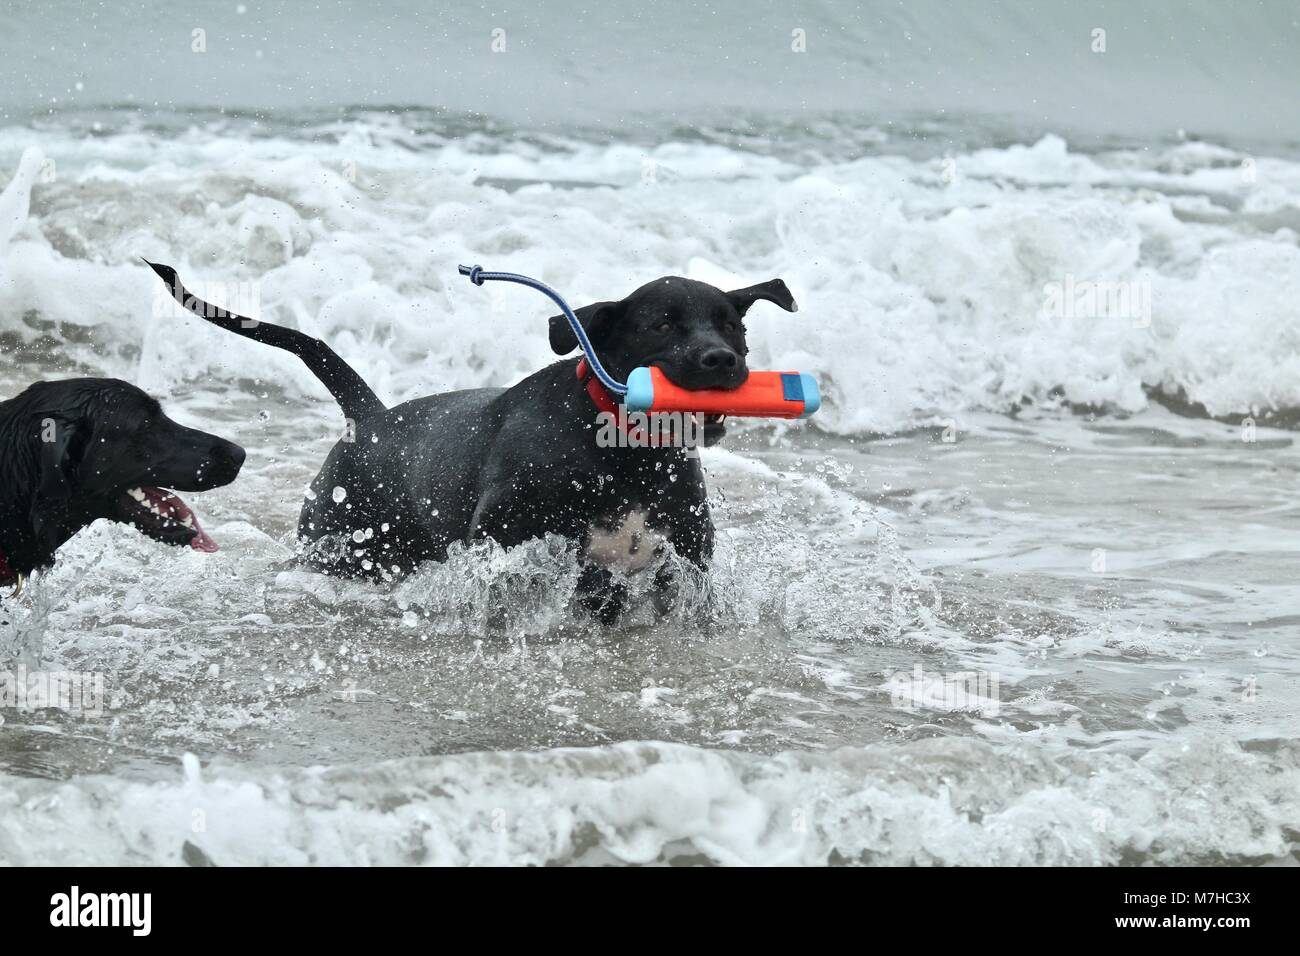 Two Large Black Dogs playing at dog beach - Stock Image